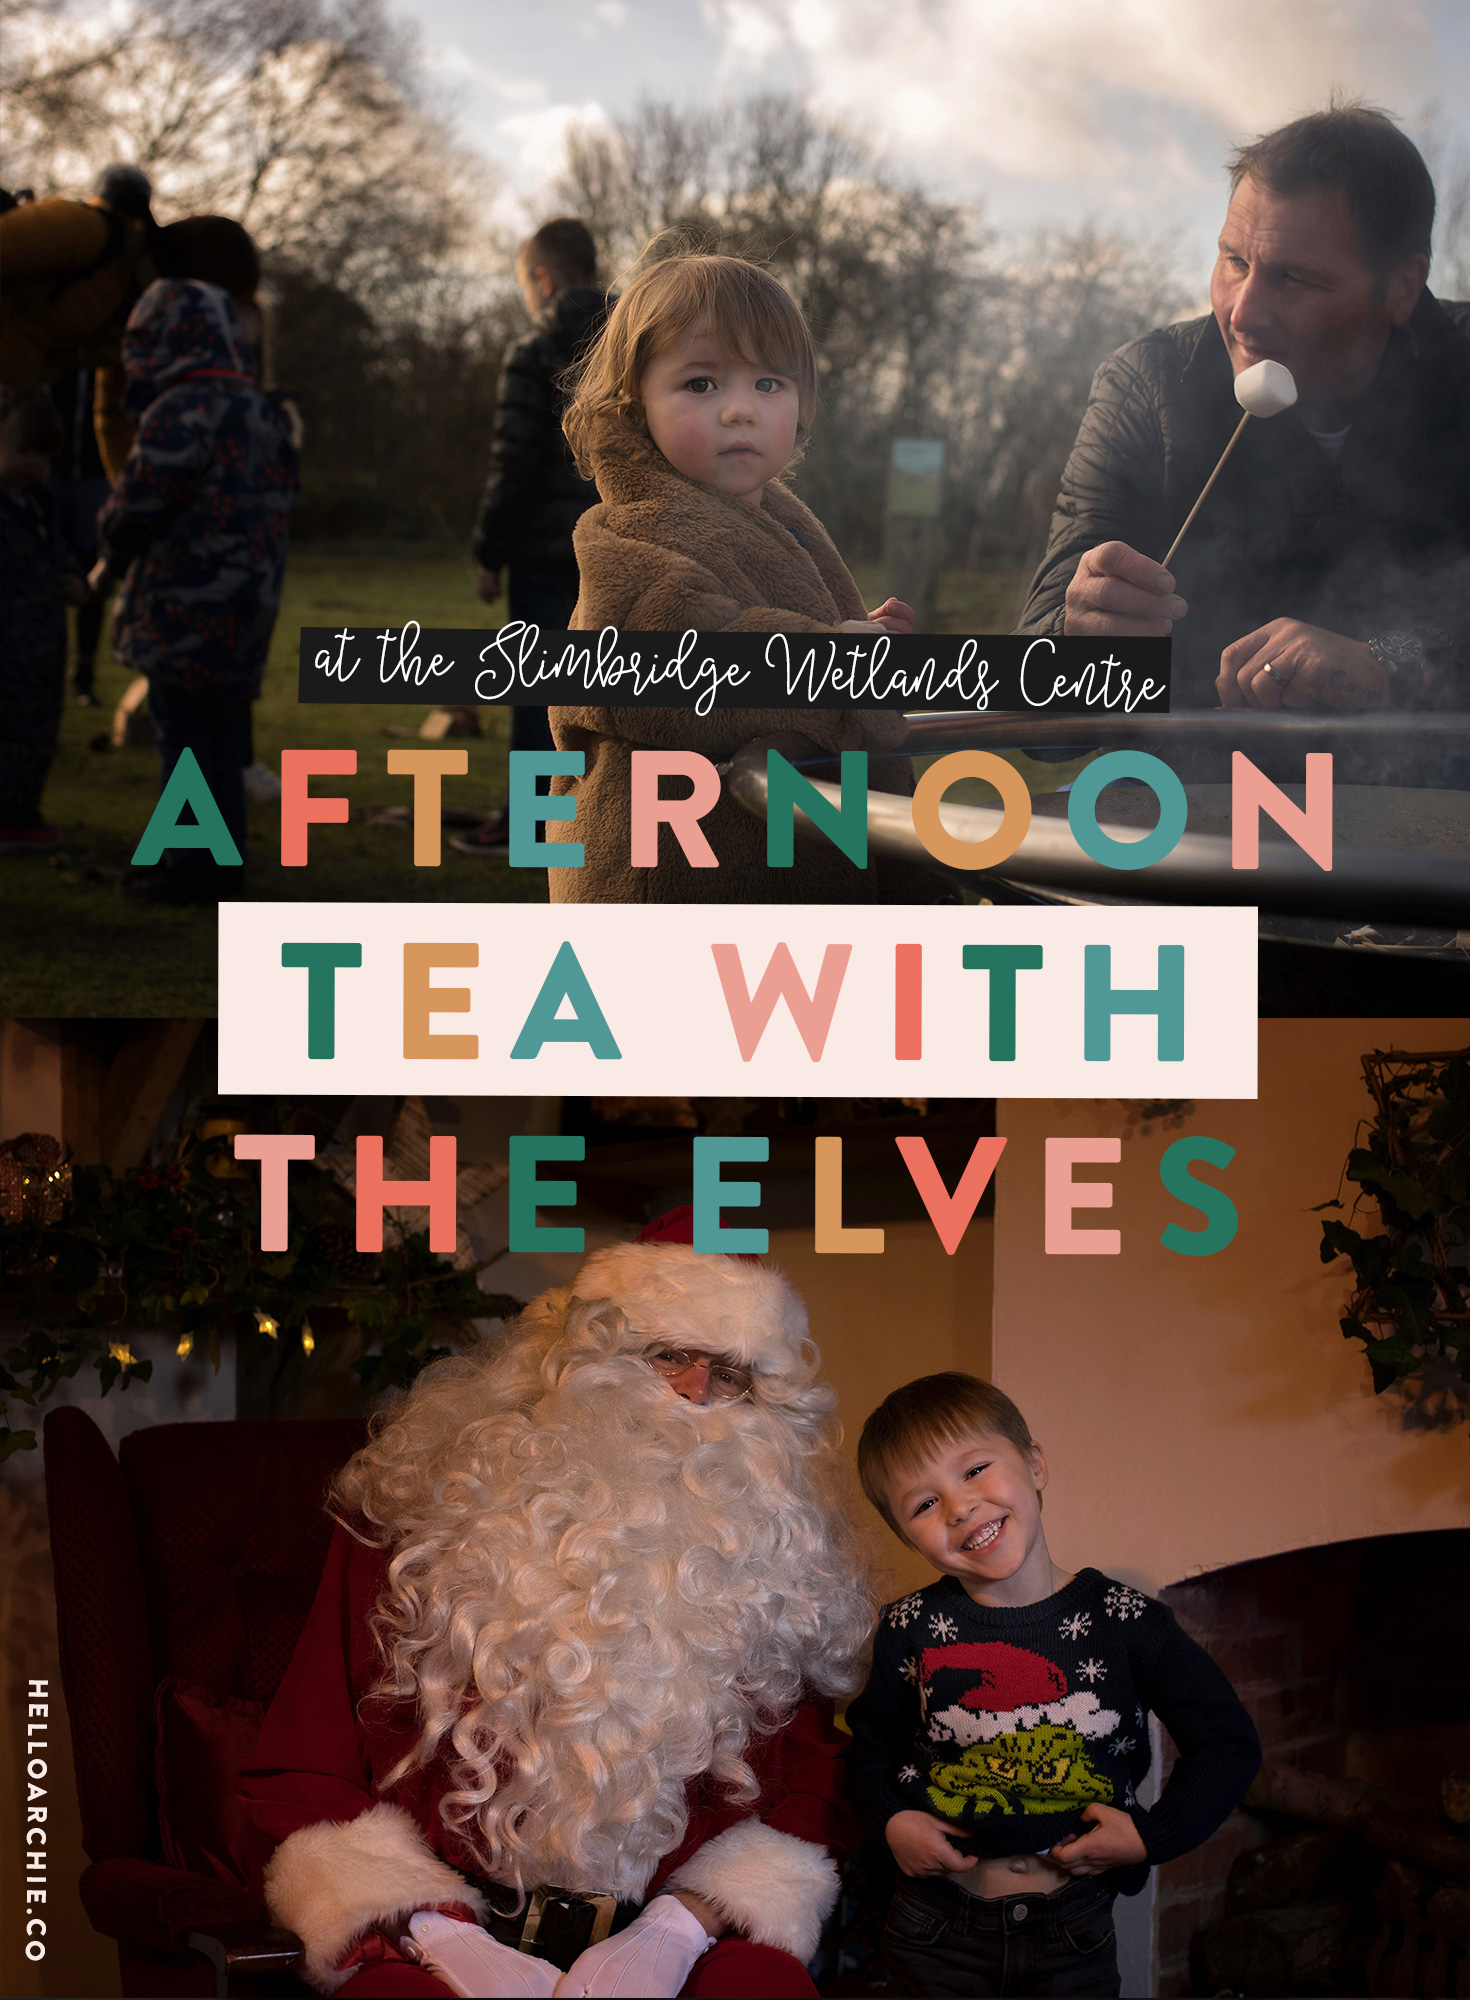 I spotted a leaflet for Santa's Grotto and afternoon tea with the elves at the Slimbridge Wetlands Centre, and as it's somewhere we'd previously visited and had a great time, we decided to round up the grandparents and visit for the day on Christmas Eve Eve Eve.